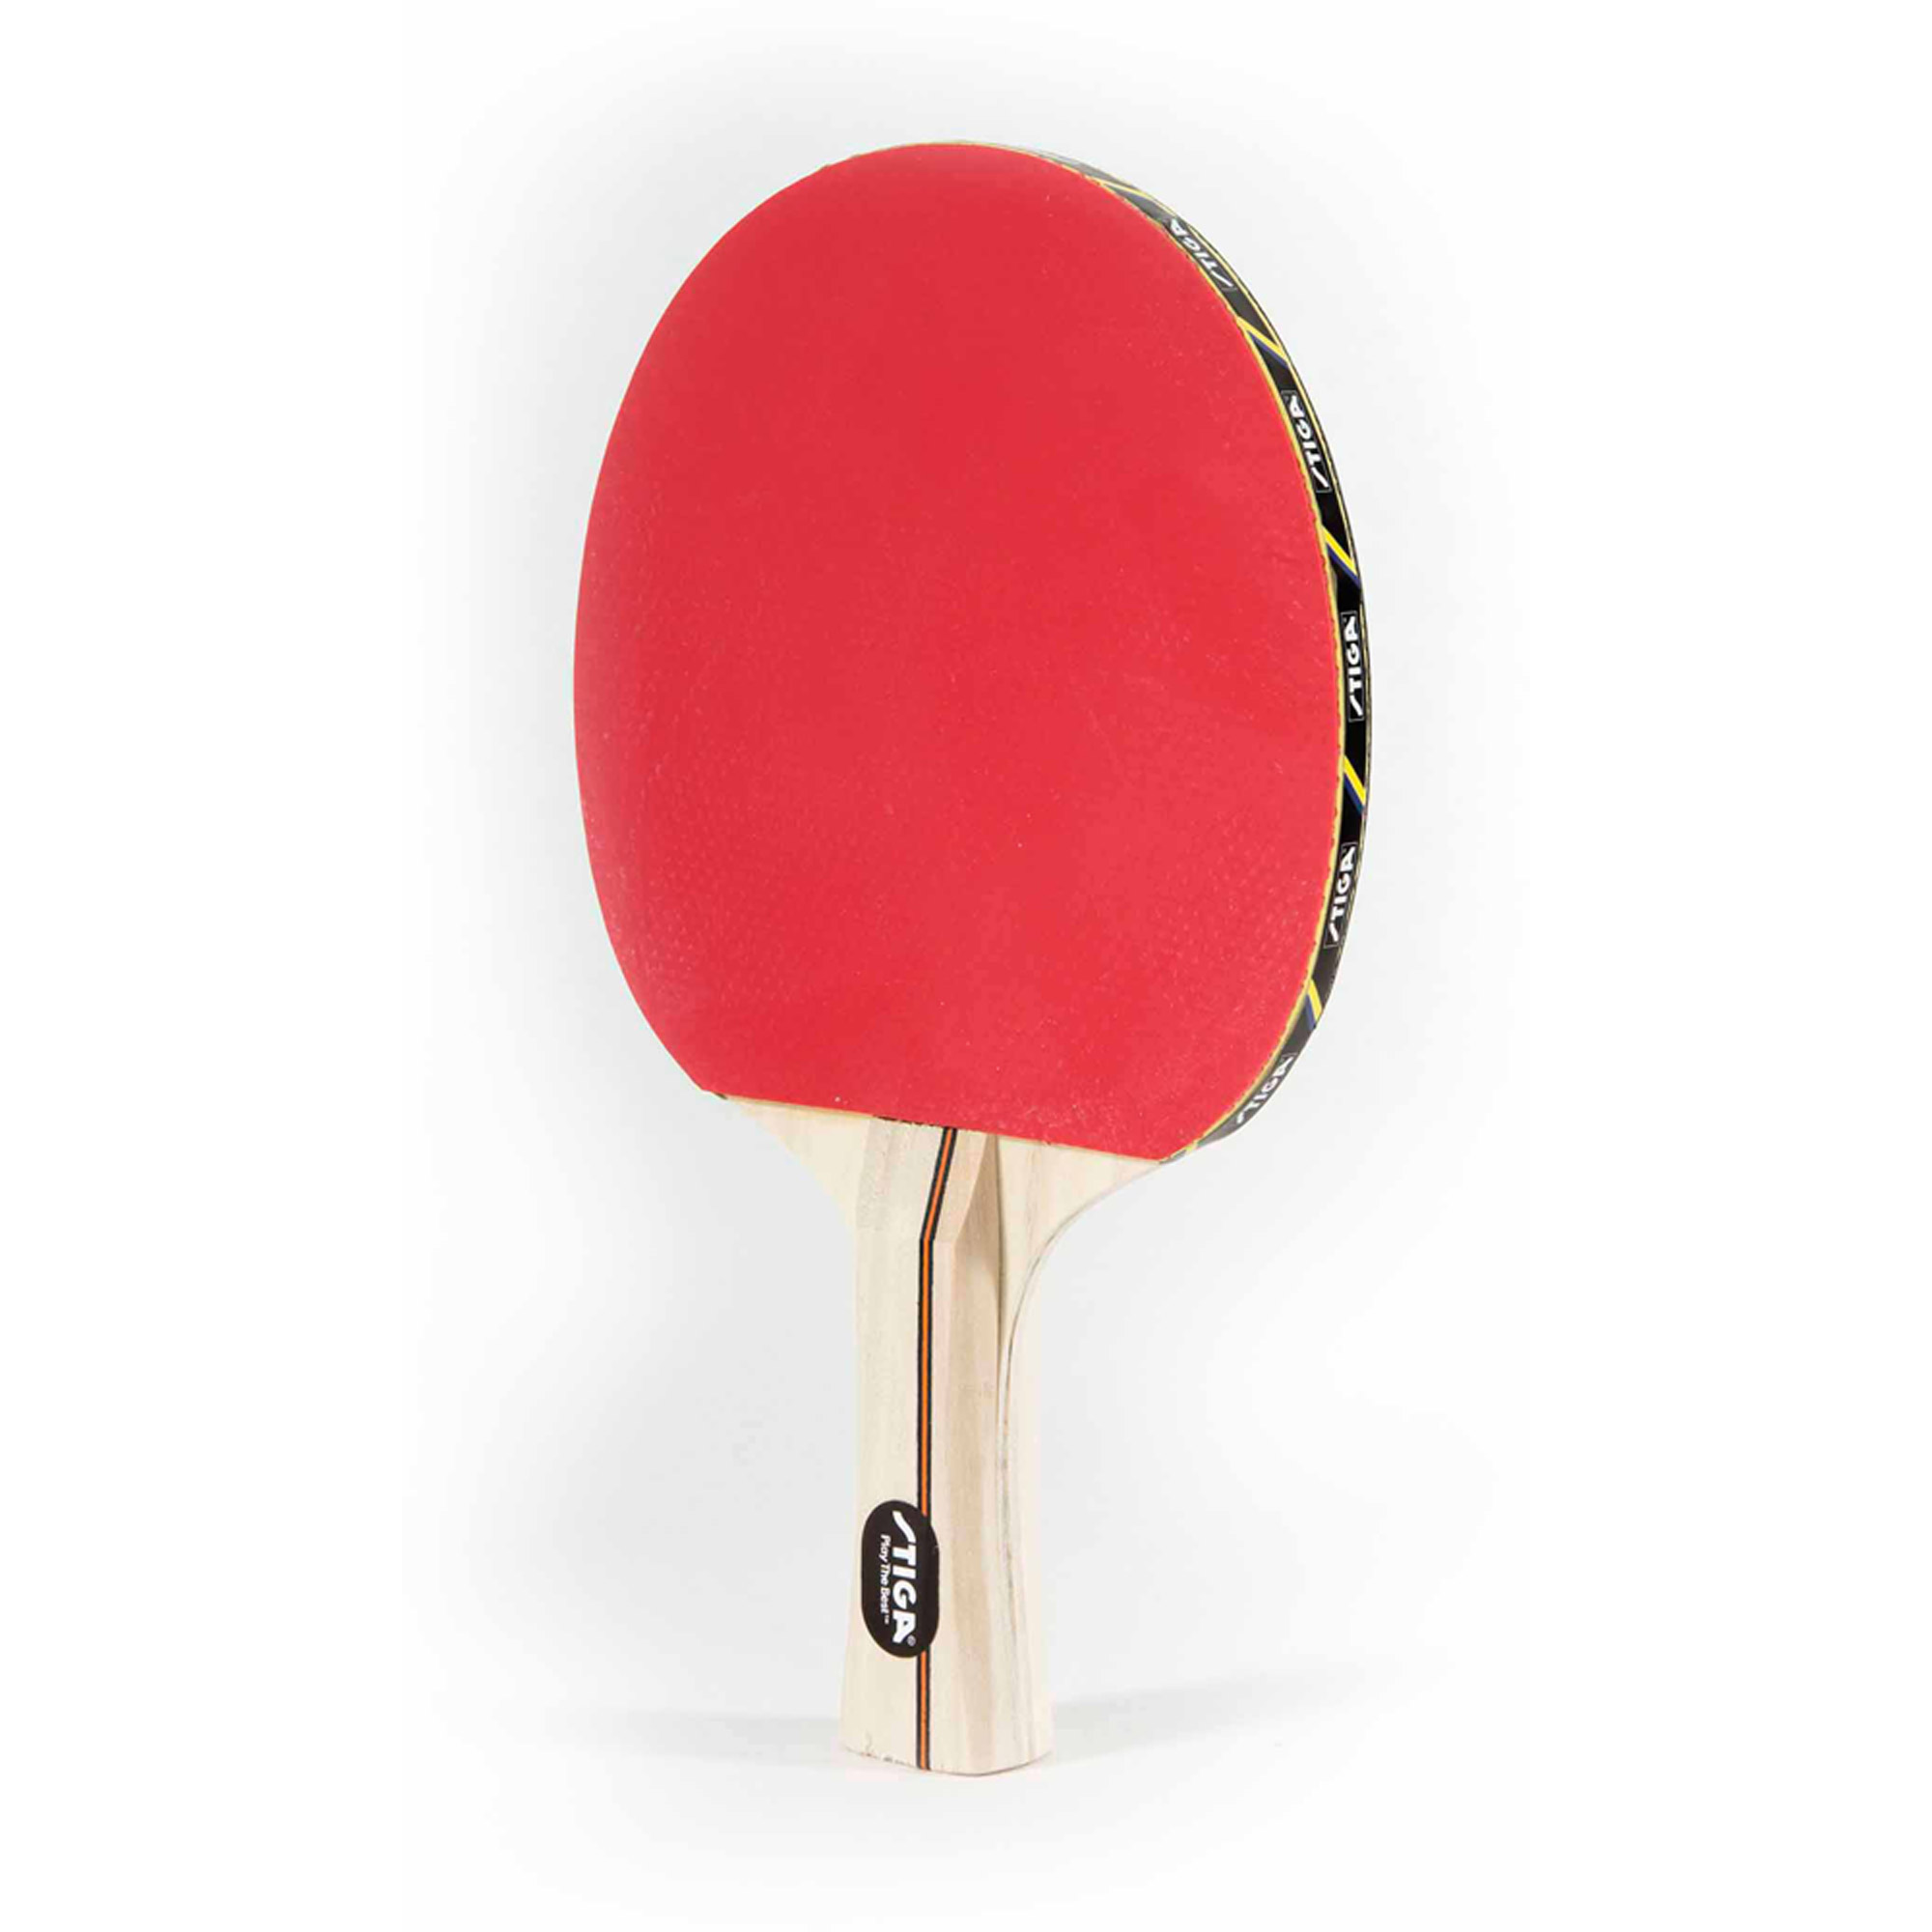 STIGA Performance 4 Player Table Tennis Set Walmart Com  sc 1 st  tagranks.com & Scintillating Walmart Stiga Table Tennis Images - Best Image Engine ...